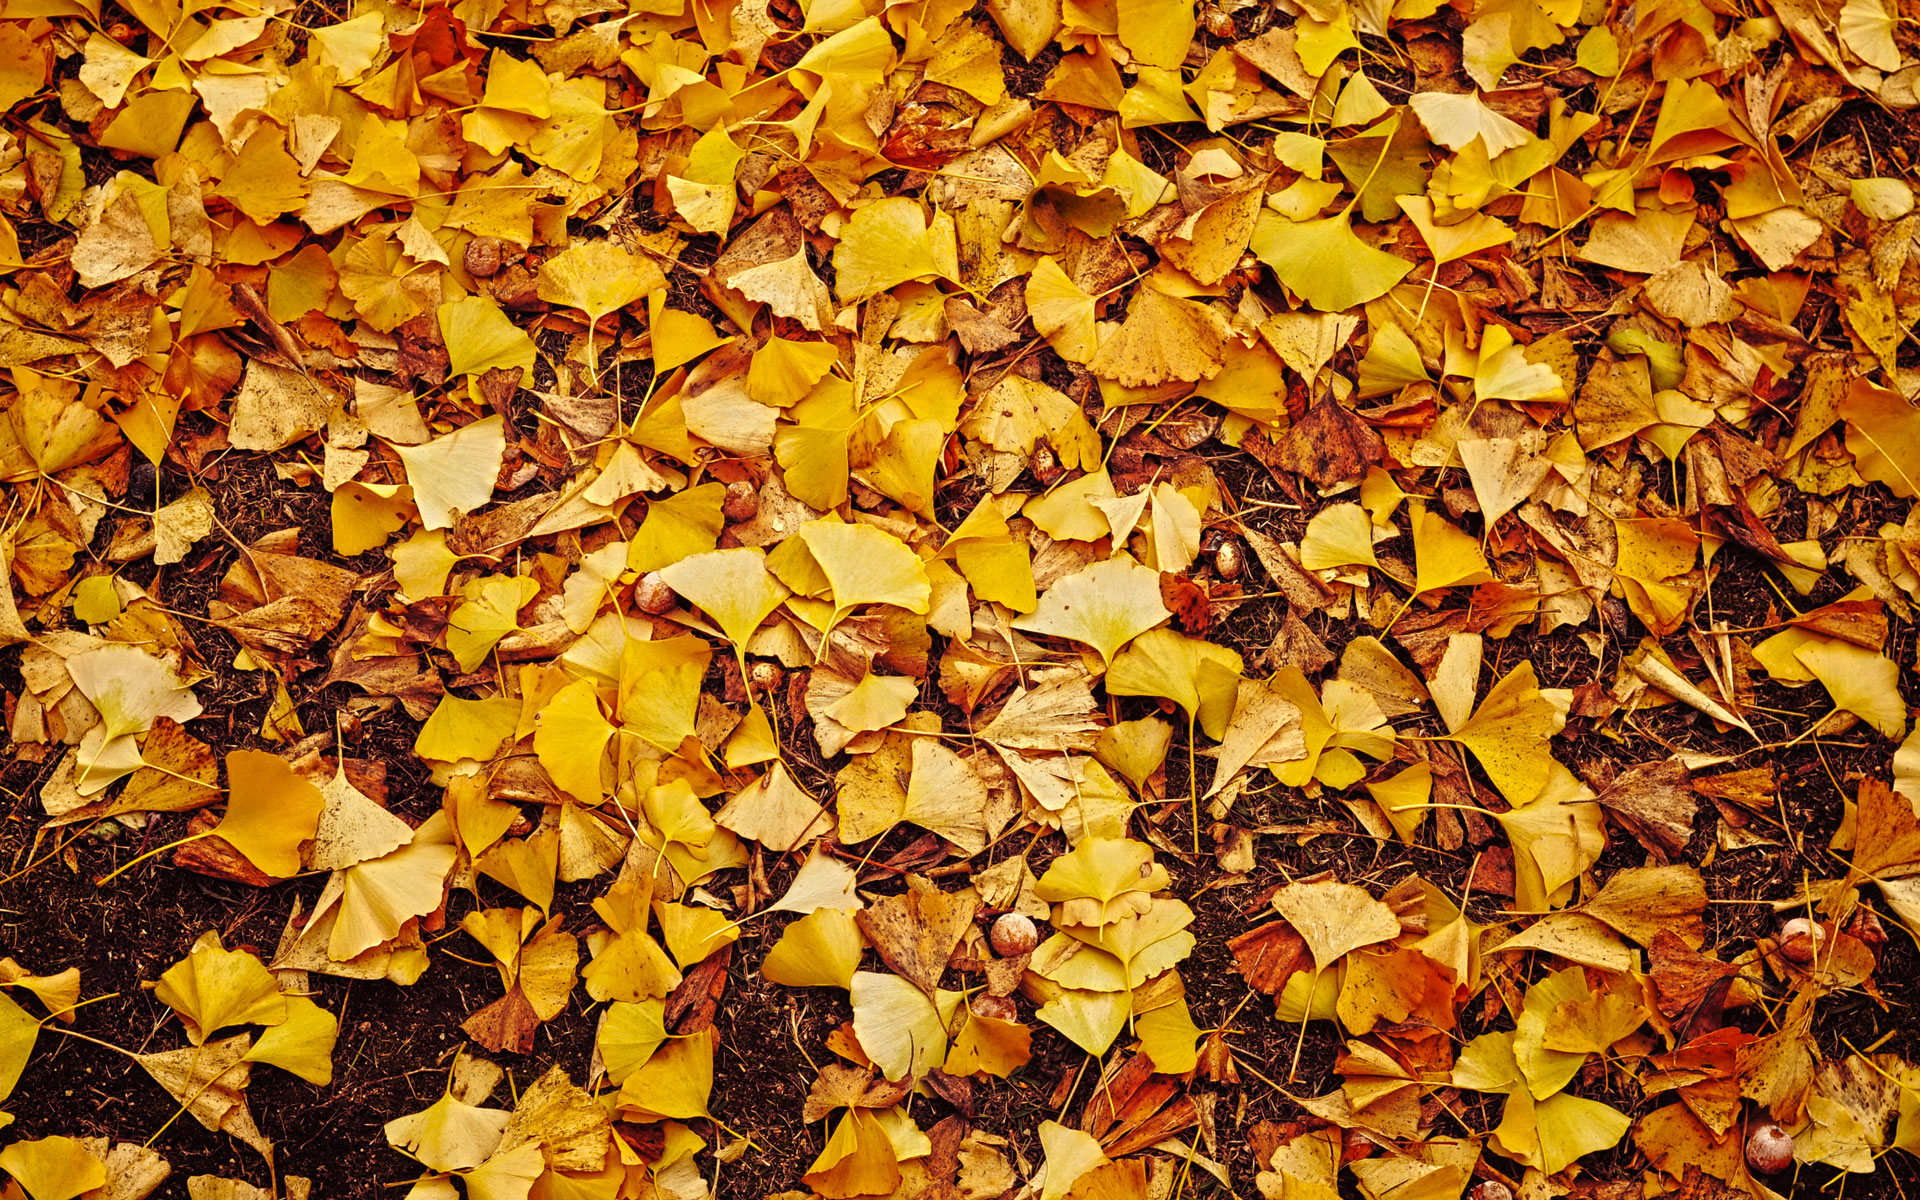 Falling Leaves Live Wallpaper Autumn Leaves Wallpaper 33086 1920x1200 Px Hdwallsource Com